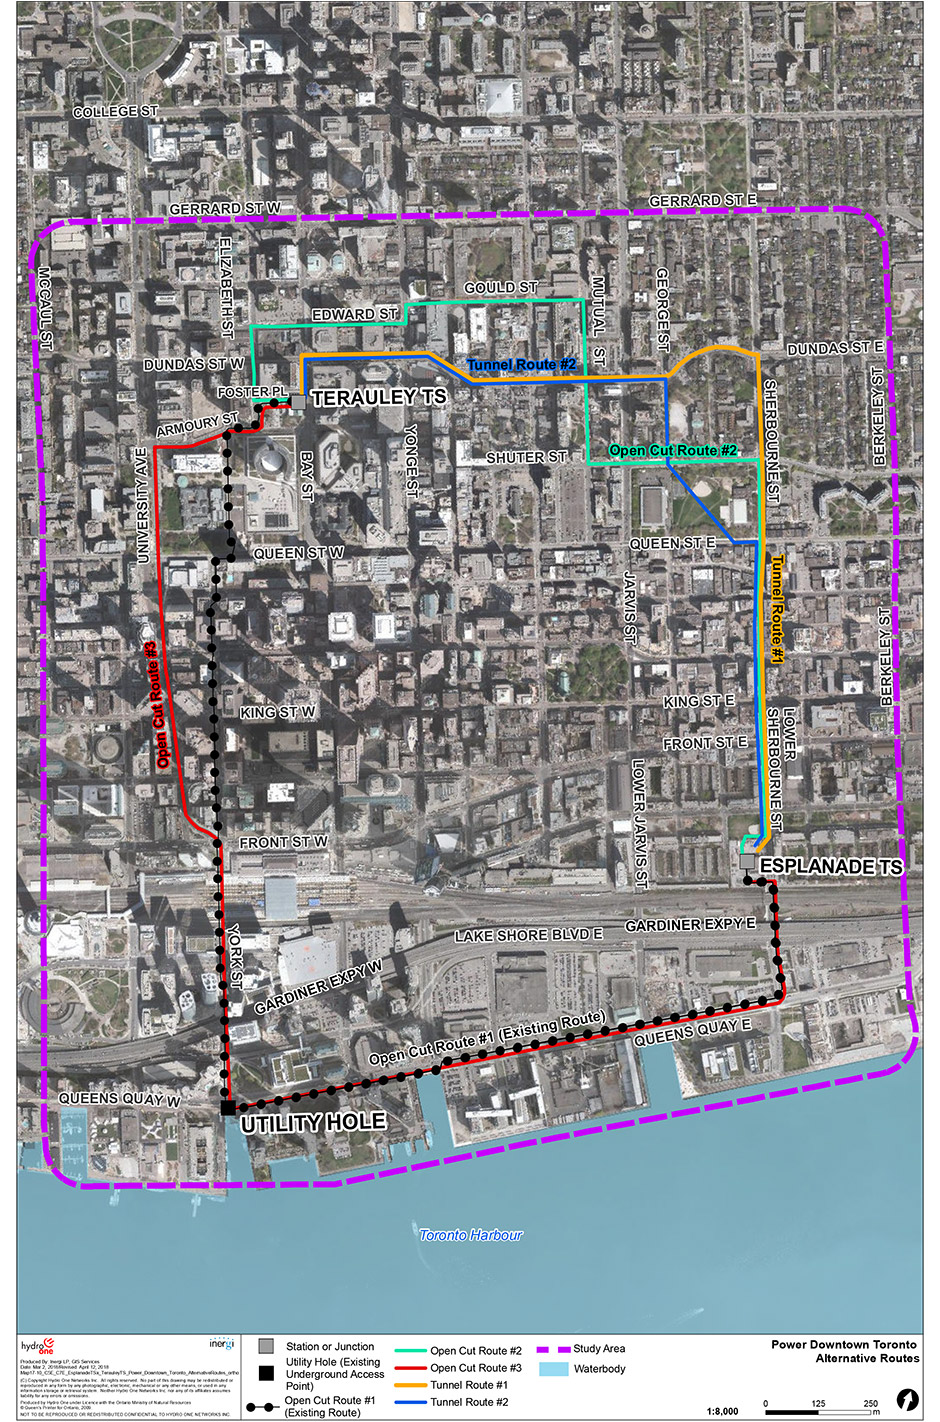 Map_Power_Downtown_Toronto_AlternativeRoutes.